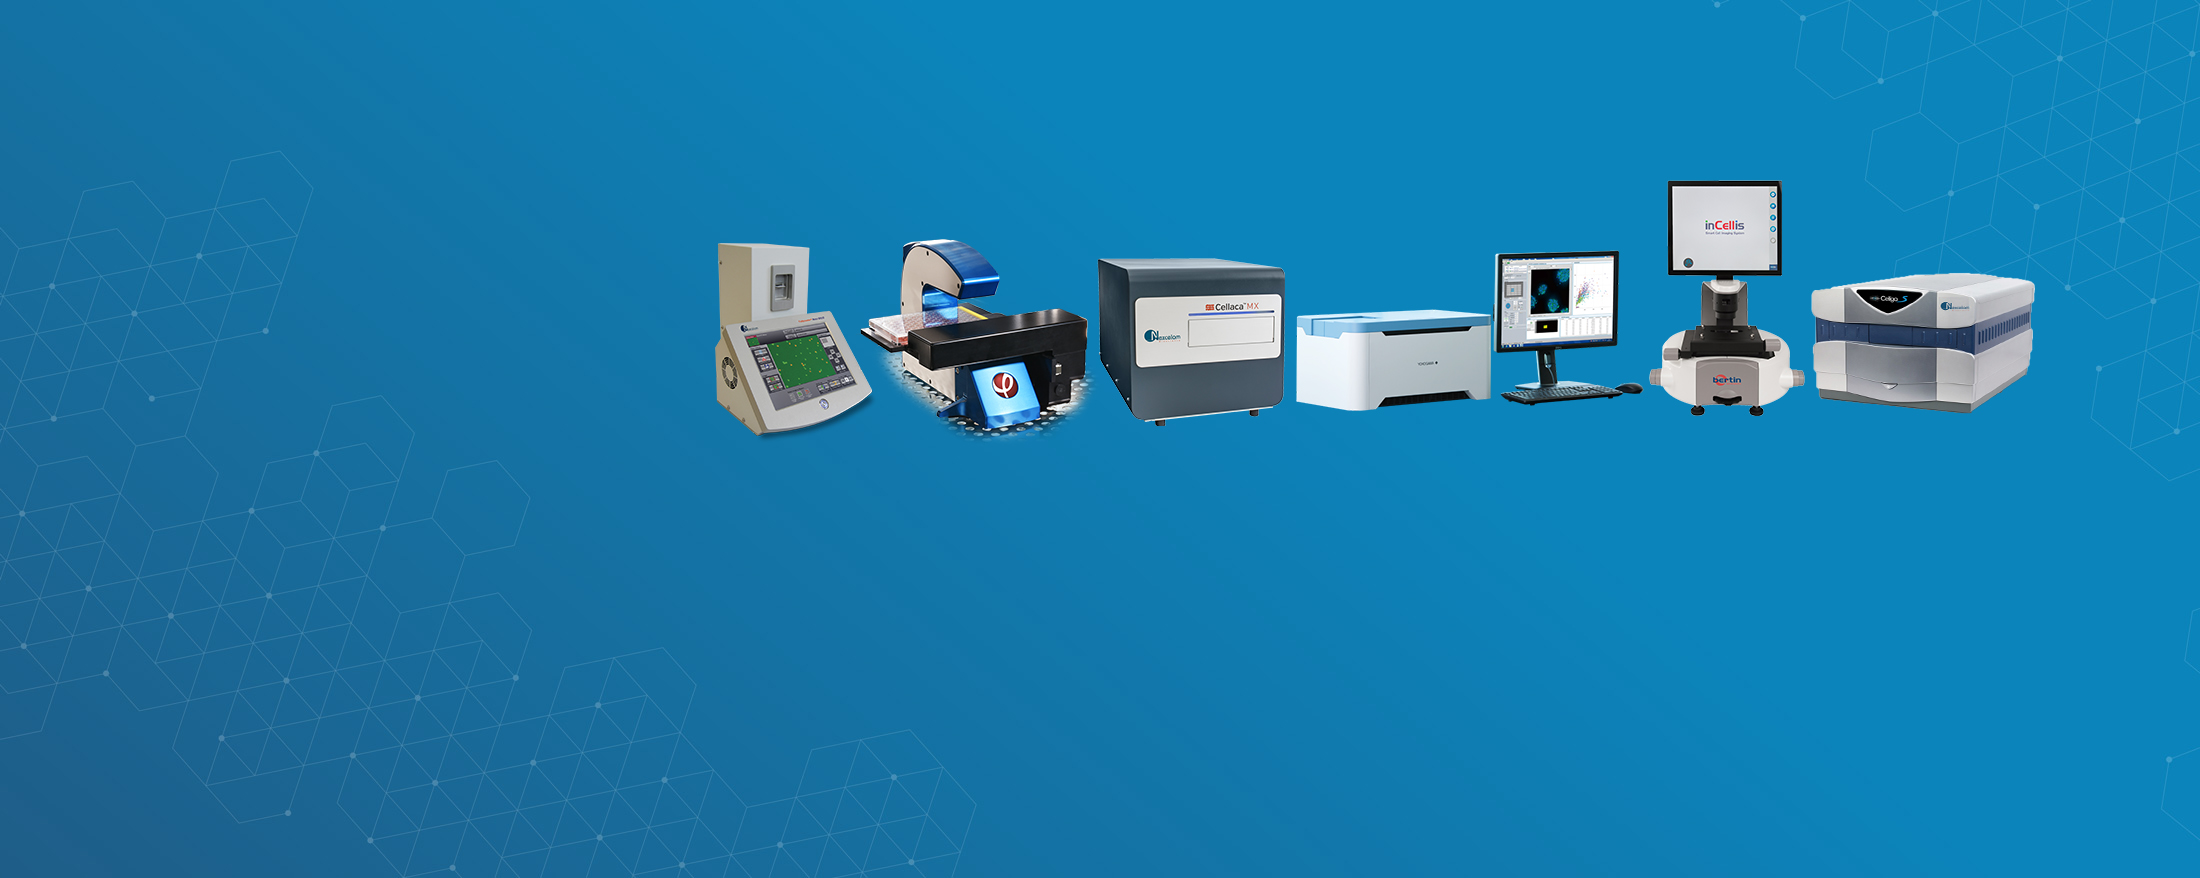 Cenibra Experts for Cytometry, Cell Imaging, Cell Count, Confocal Imaging, Cell Microscopy, Holographic Imaging